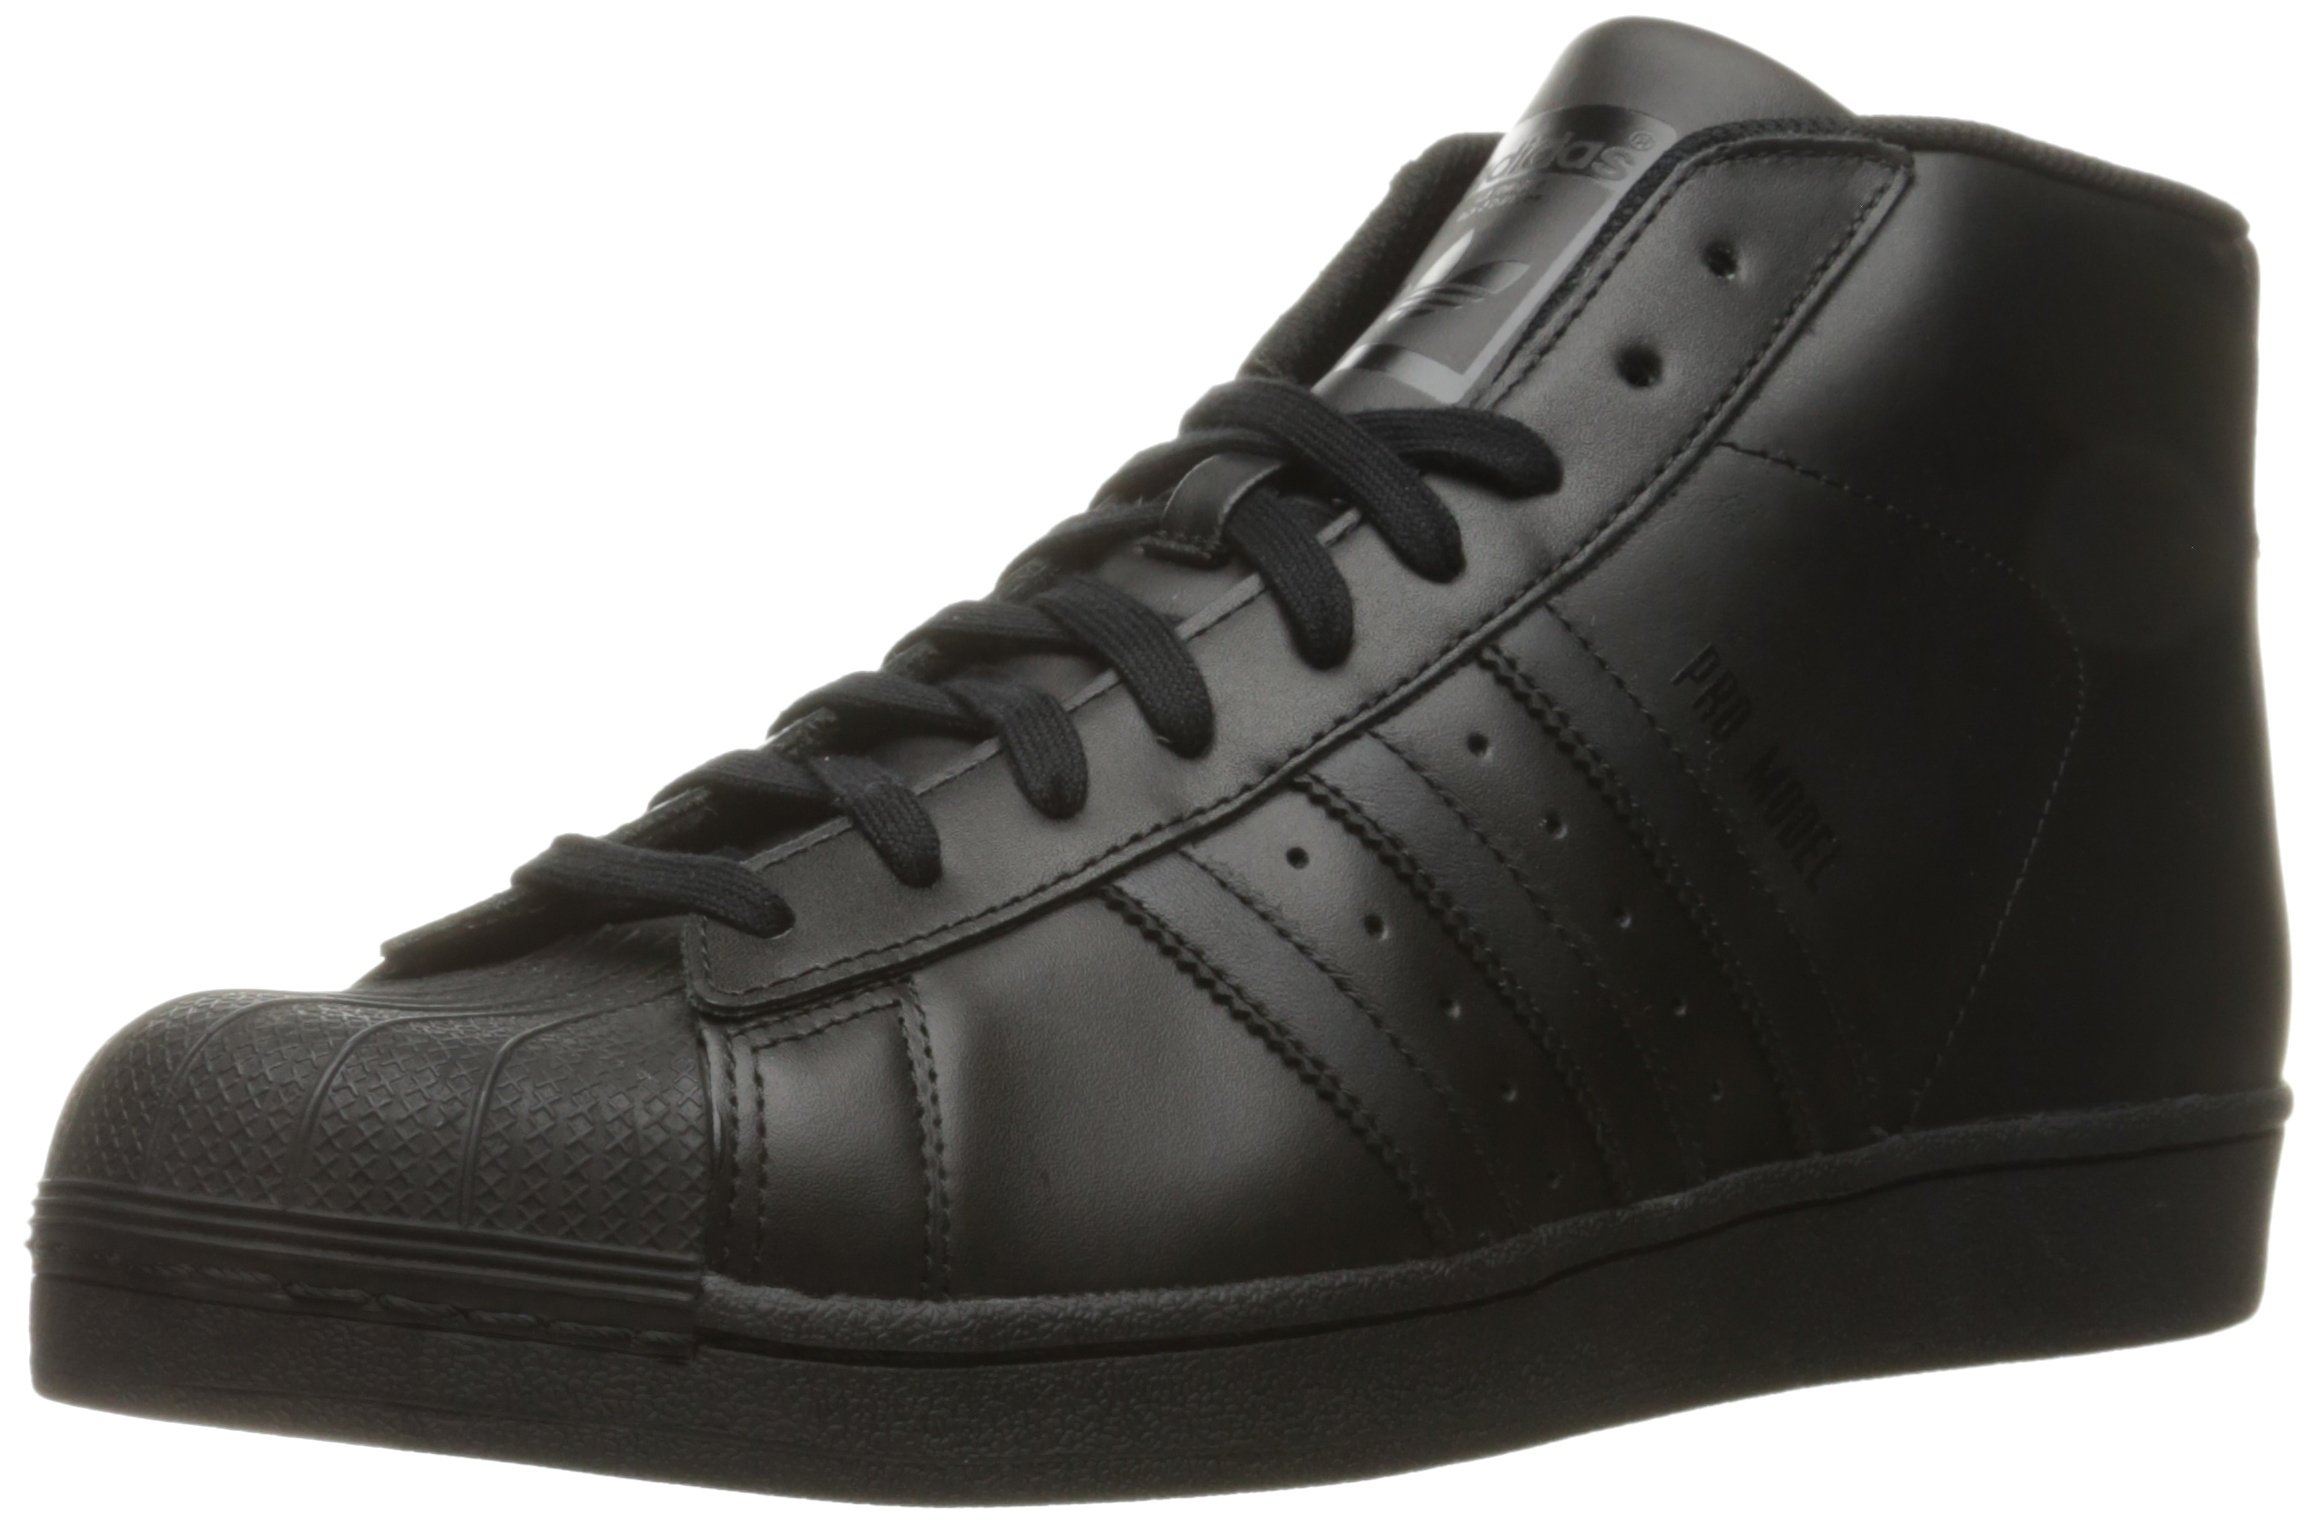 sports shoes d2f27 59a03 Galleon - Adidas Originals Men s Pro Model Fashion Sneaker,  Black Black Black, 5.5 M US